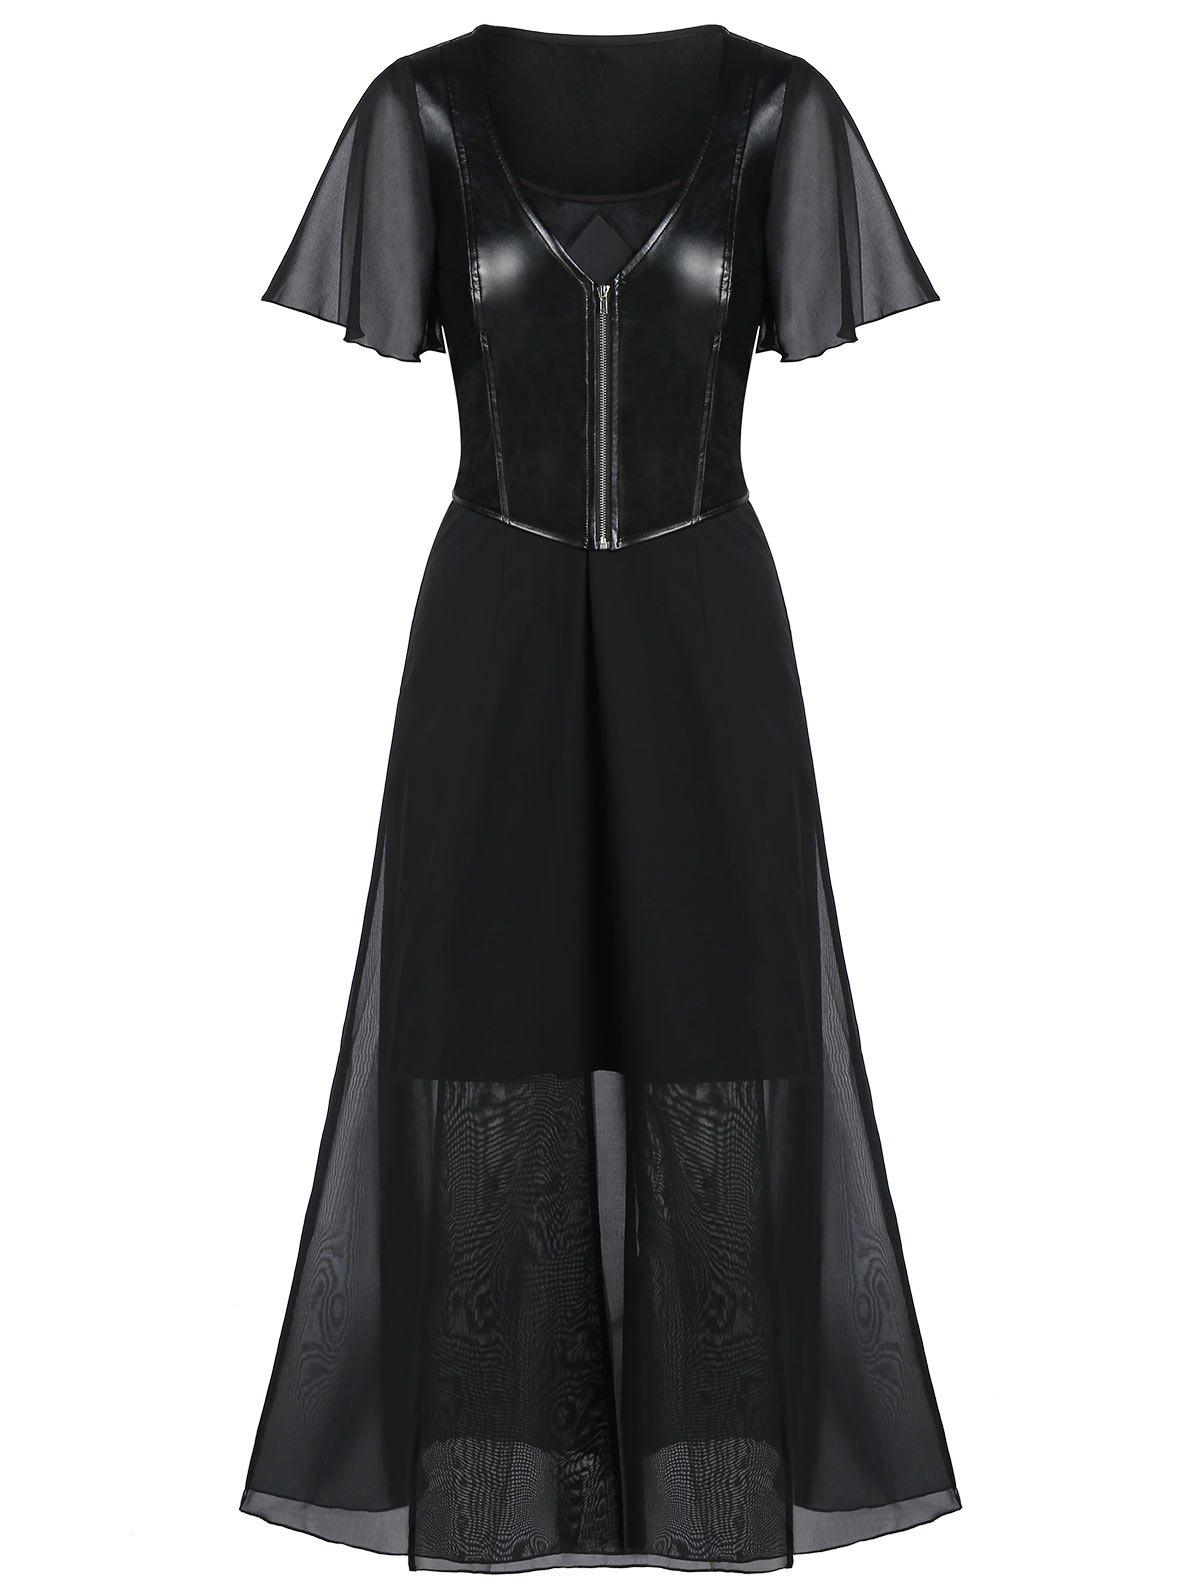 Unique Mesh Insert Strappy Midi Dress with Faux Leather Top